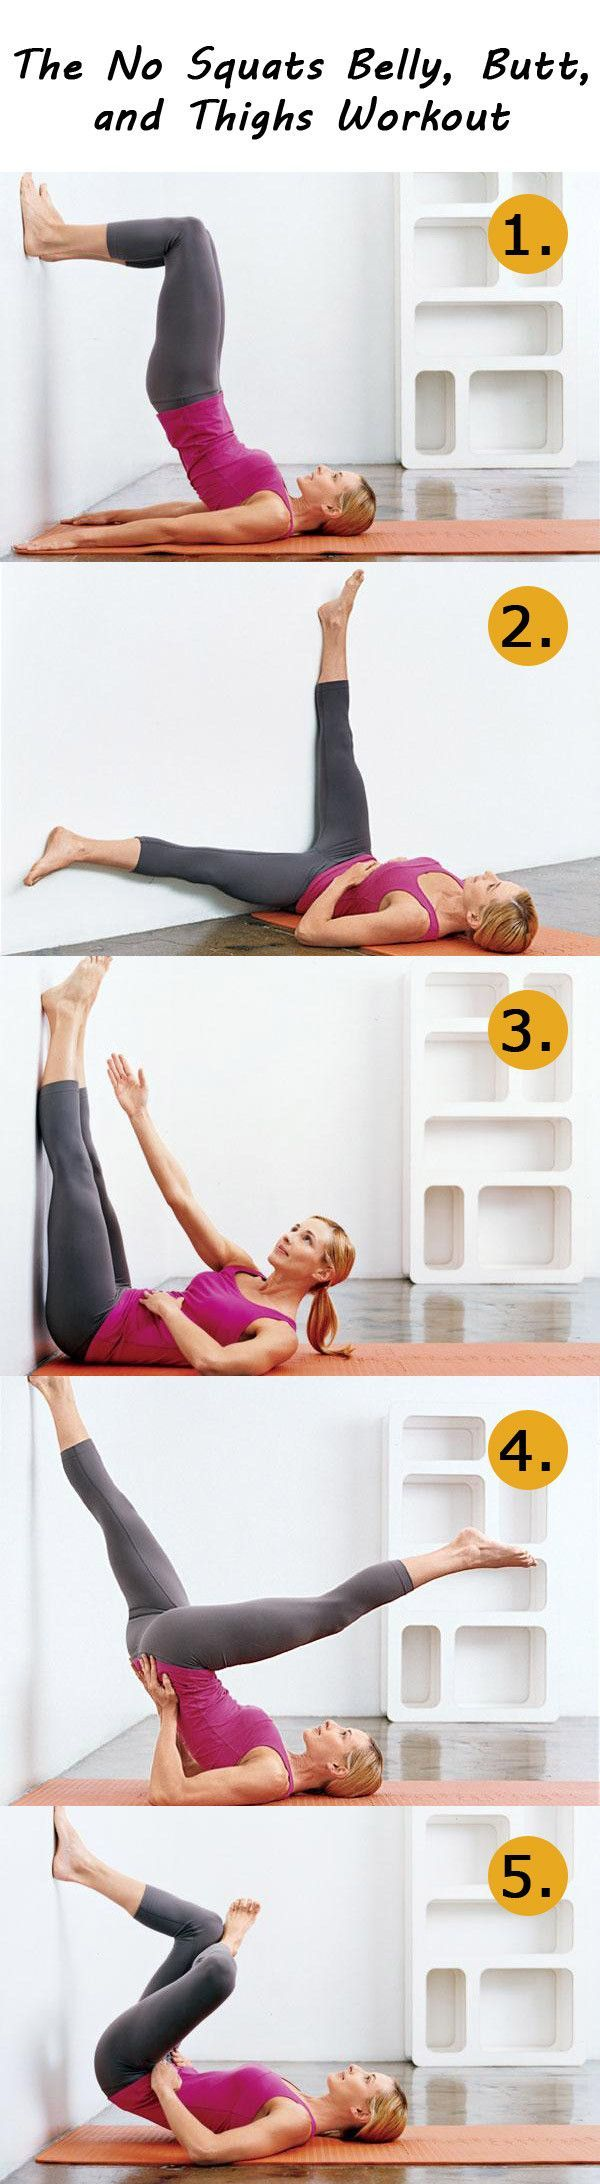 I think I can actually do this with my bad knee!  Can't wait for it to heal, but at least I can start my yoga again!